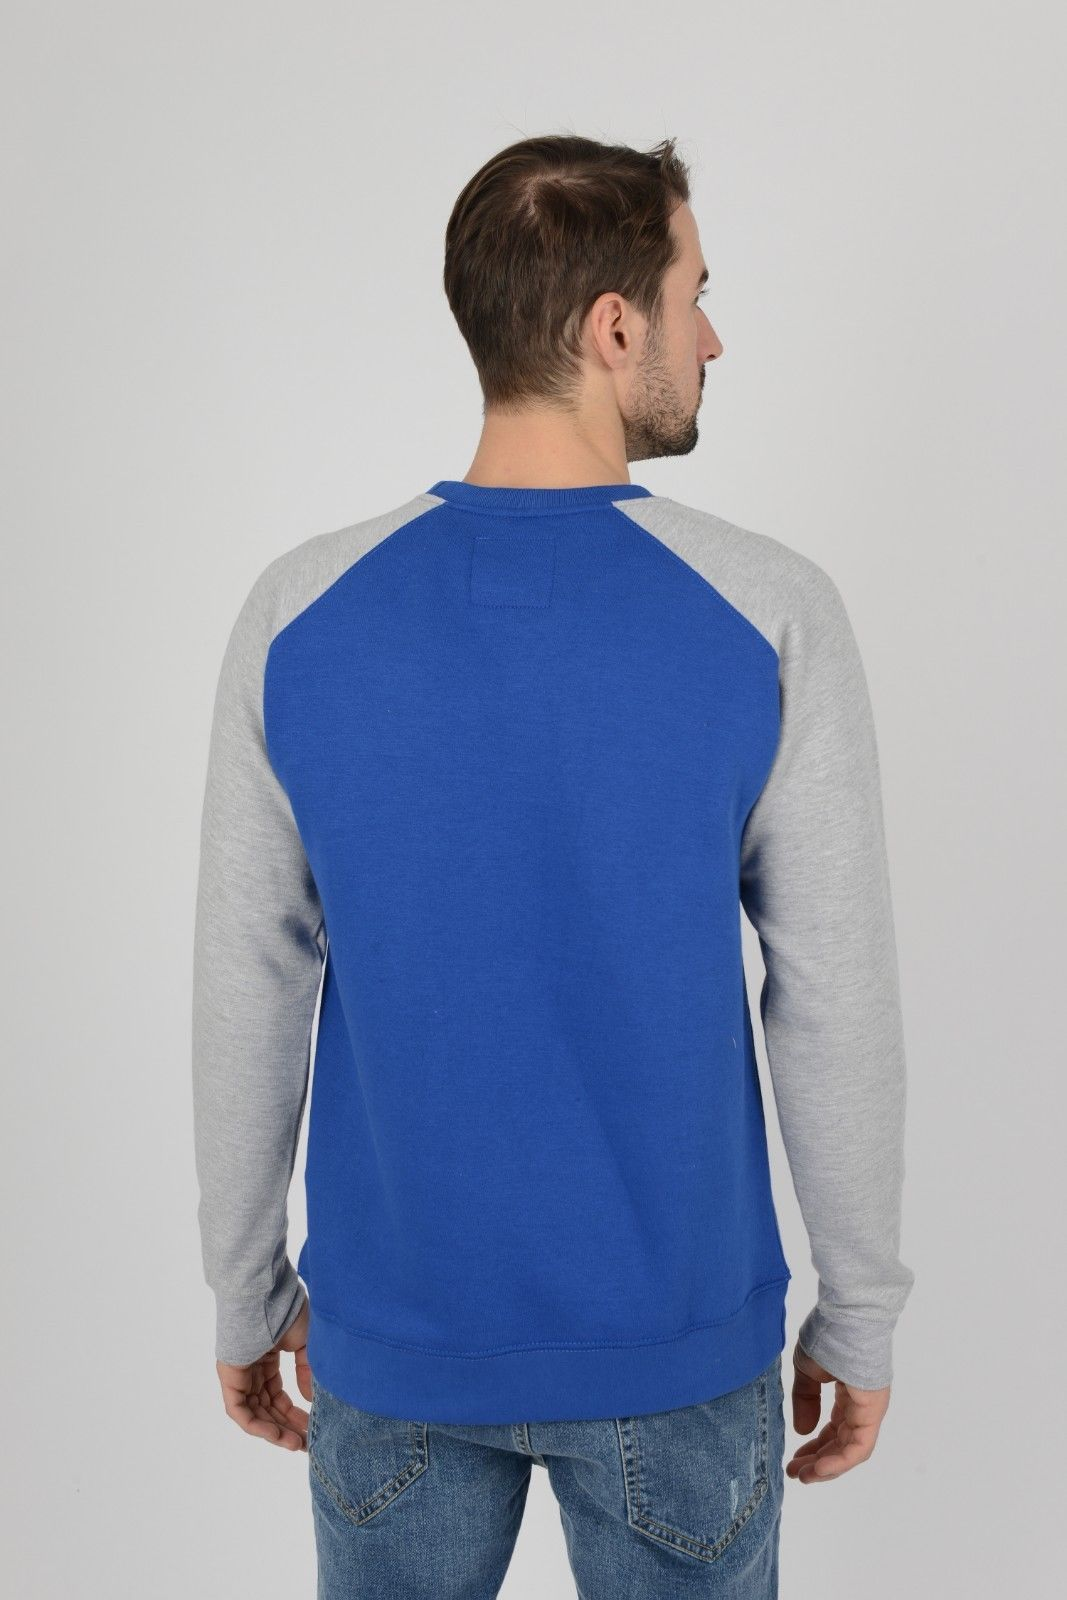 82541e82922b Fiveemperor offers high quality Mens sweatshirts with amazing price on this  christmas for only £15.99